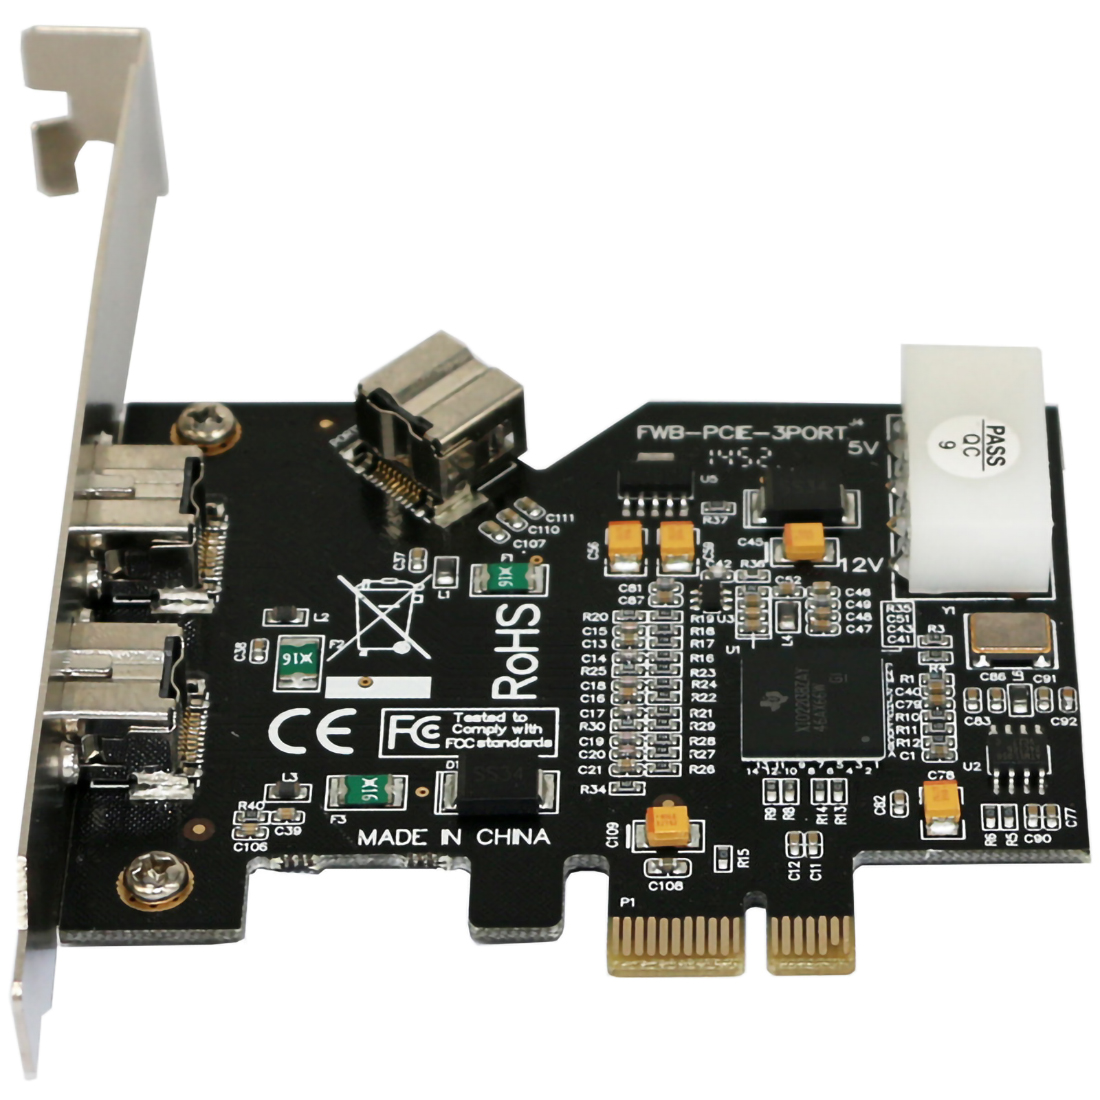 PCI Express PCI-E x1 to 3 Ports <font><b>1394B</b></font> Controller Card Add On Card for FireWire 800 <font><b>IEEE</b></font> 1394 B 2+1 Digital Camera Video Capture image